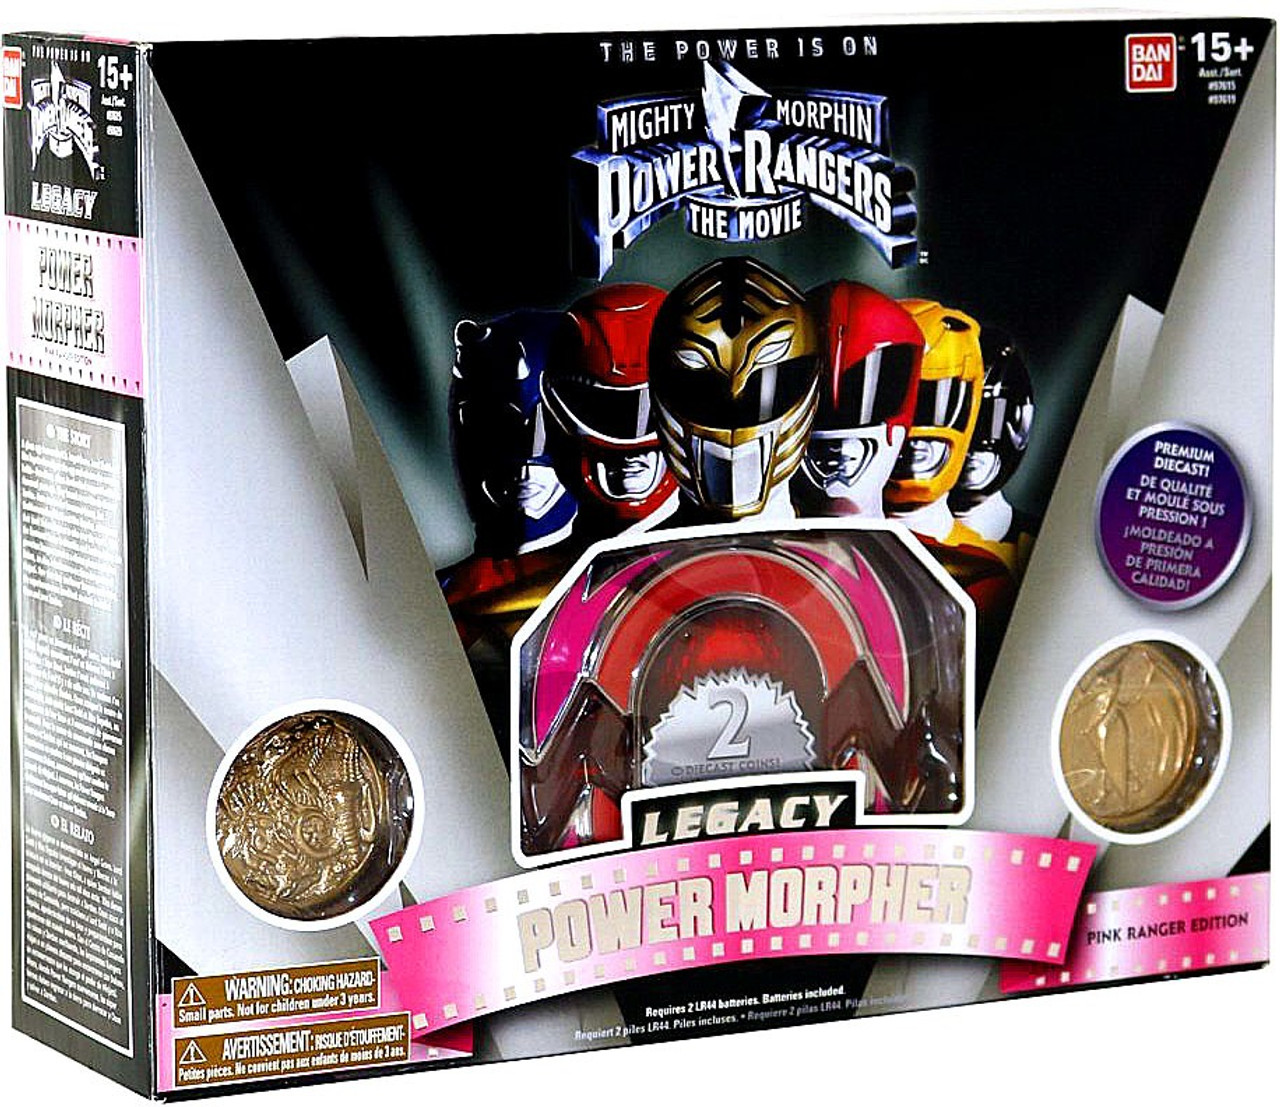 Mighty Morphin Power Rangers Legacy Power morpher Pink Ranger Edition